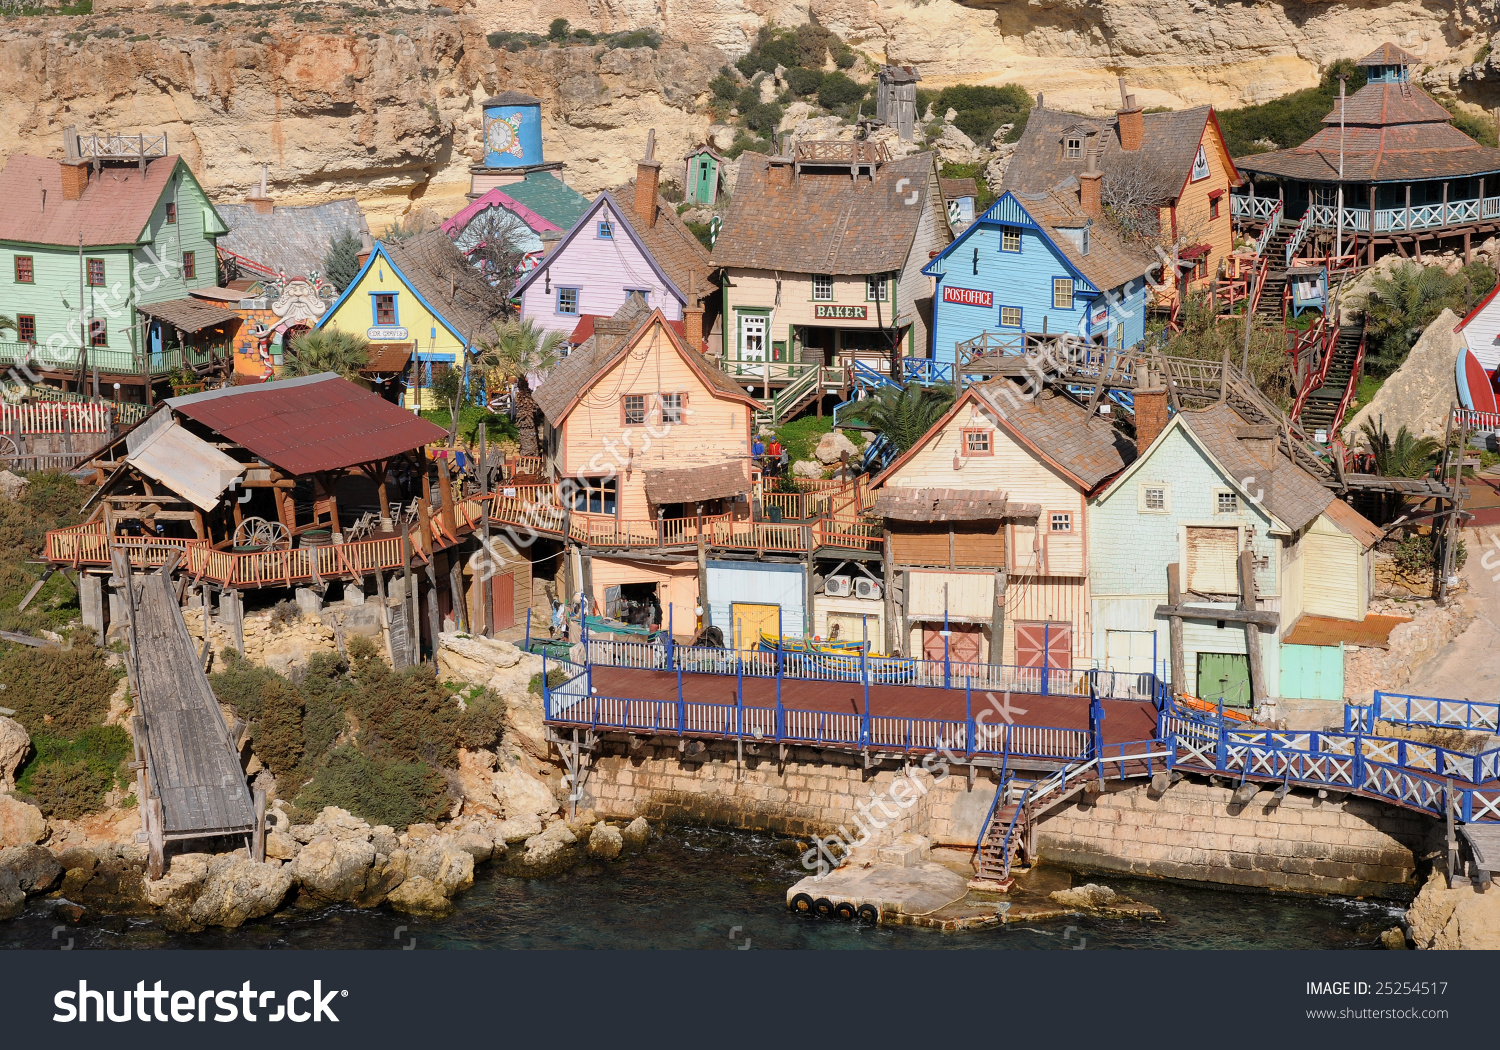 Popeye Village, Anchor Bay, Malta Stock Photo 25254517 : Shutterstock.